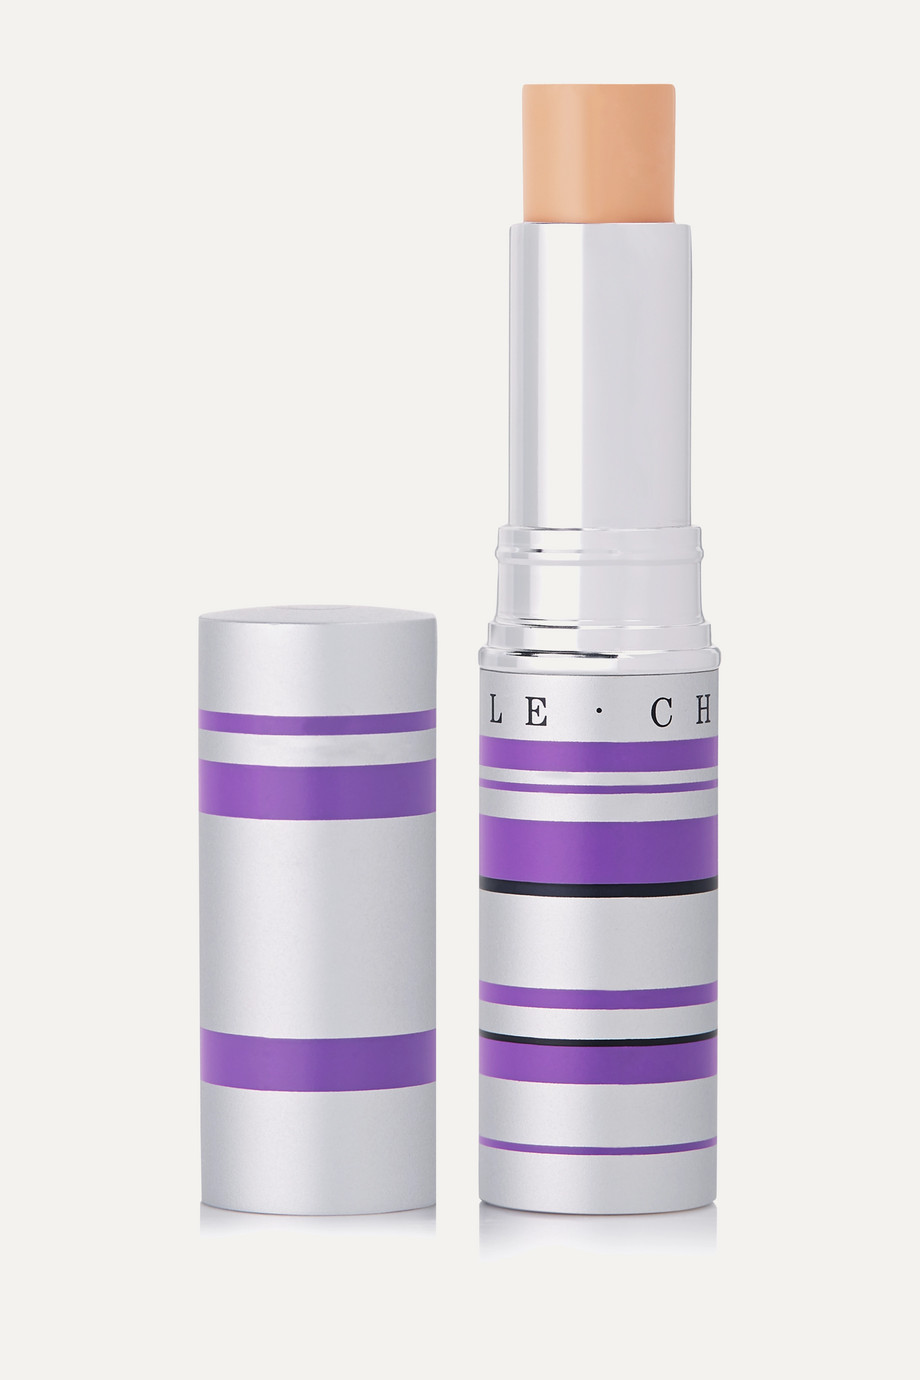 Chantecaille Real Skin + Eye and Face Stick - 1